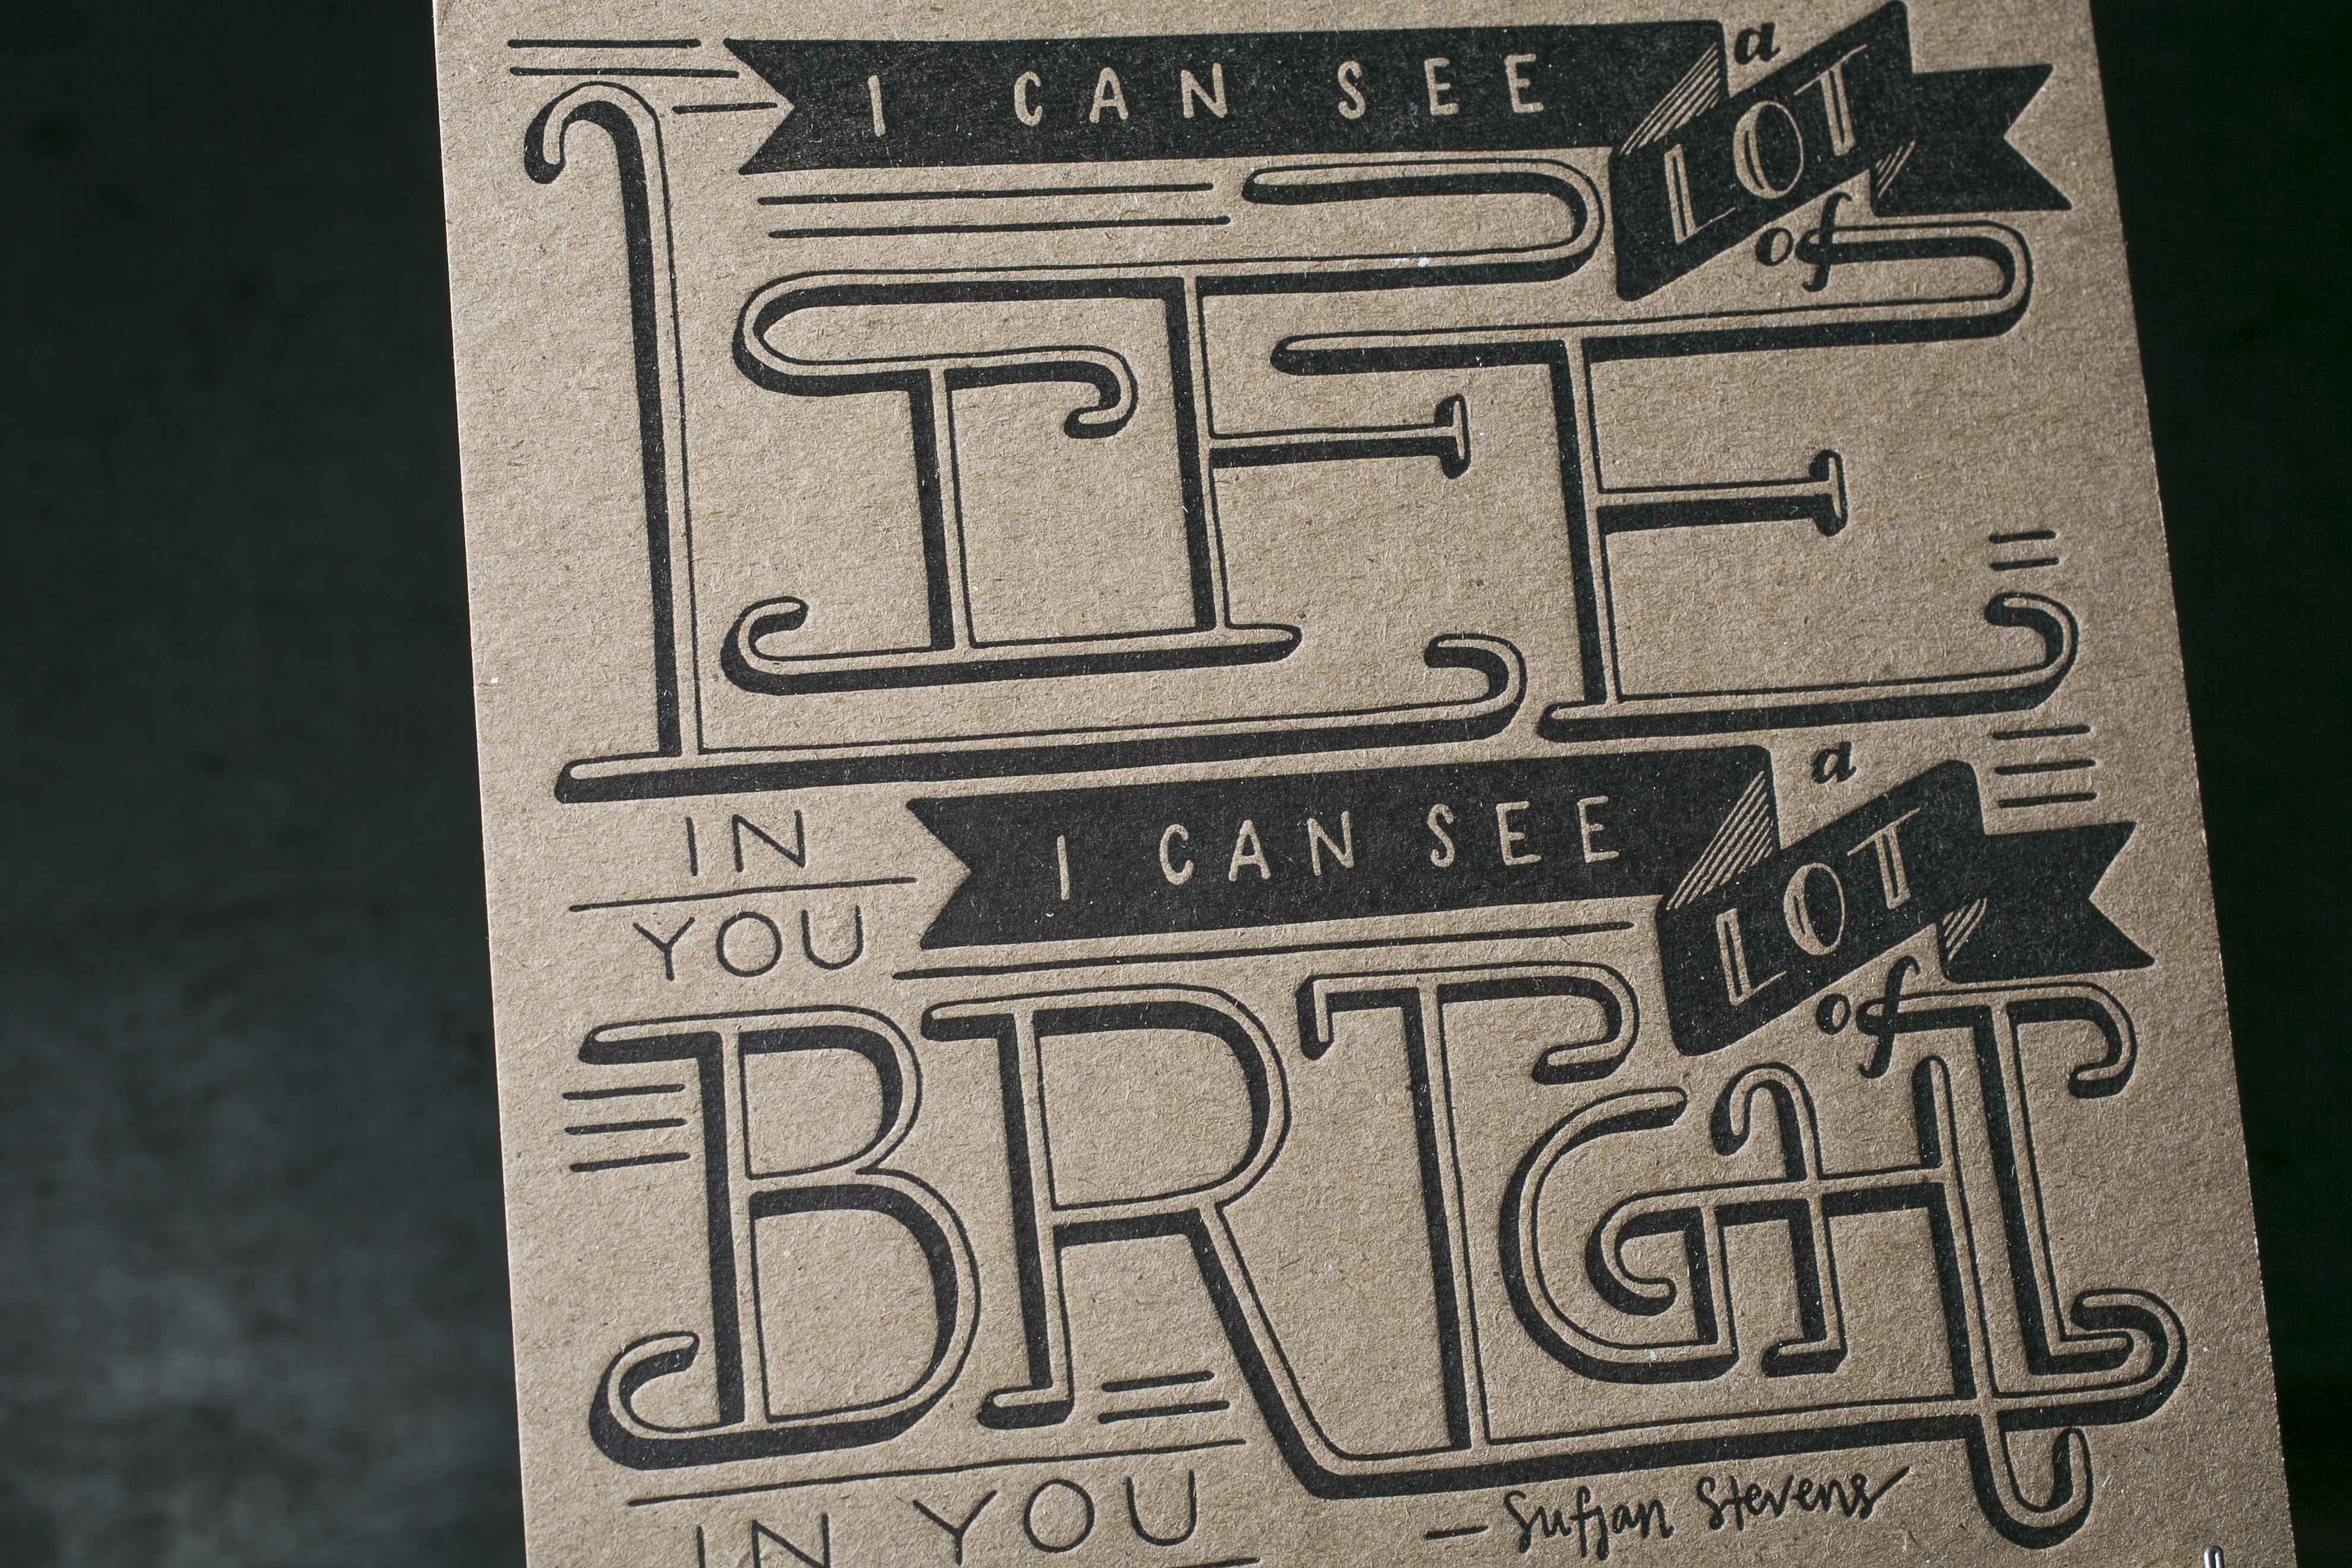 Letterpress art print from Rabbit Wife Studio - letterpress printed by Boxcar Press